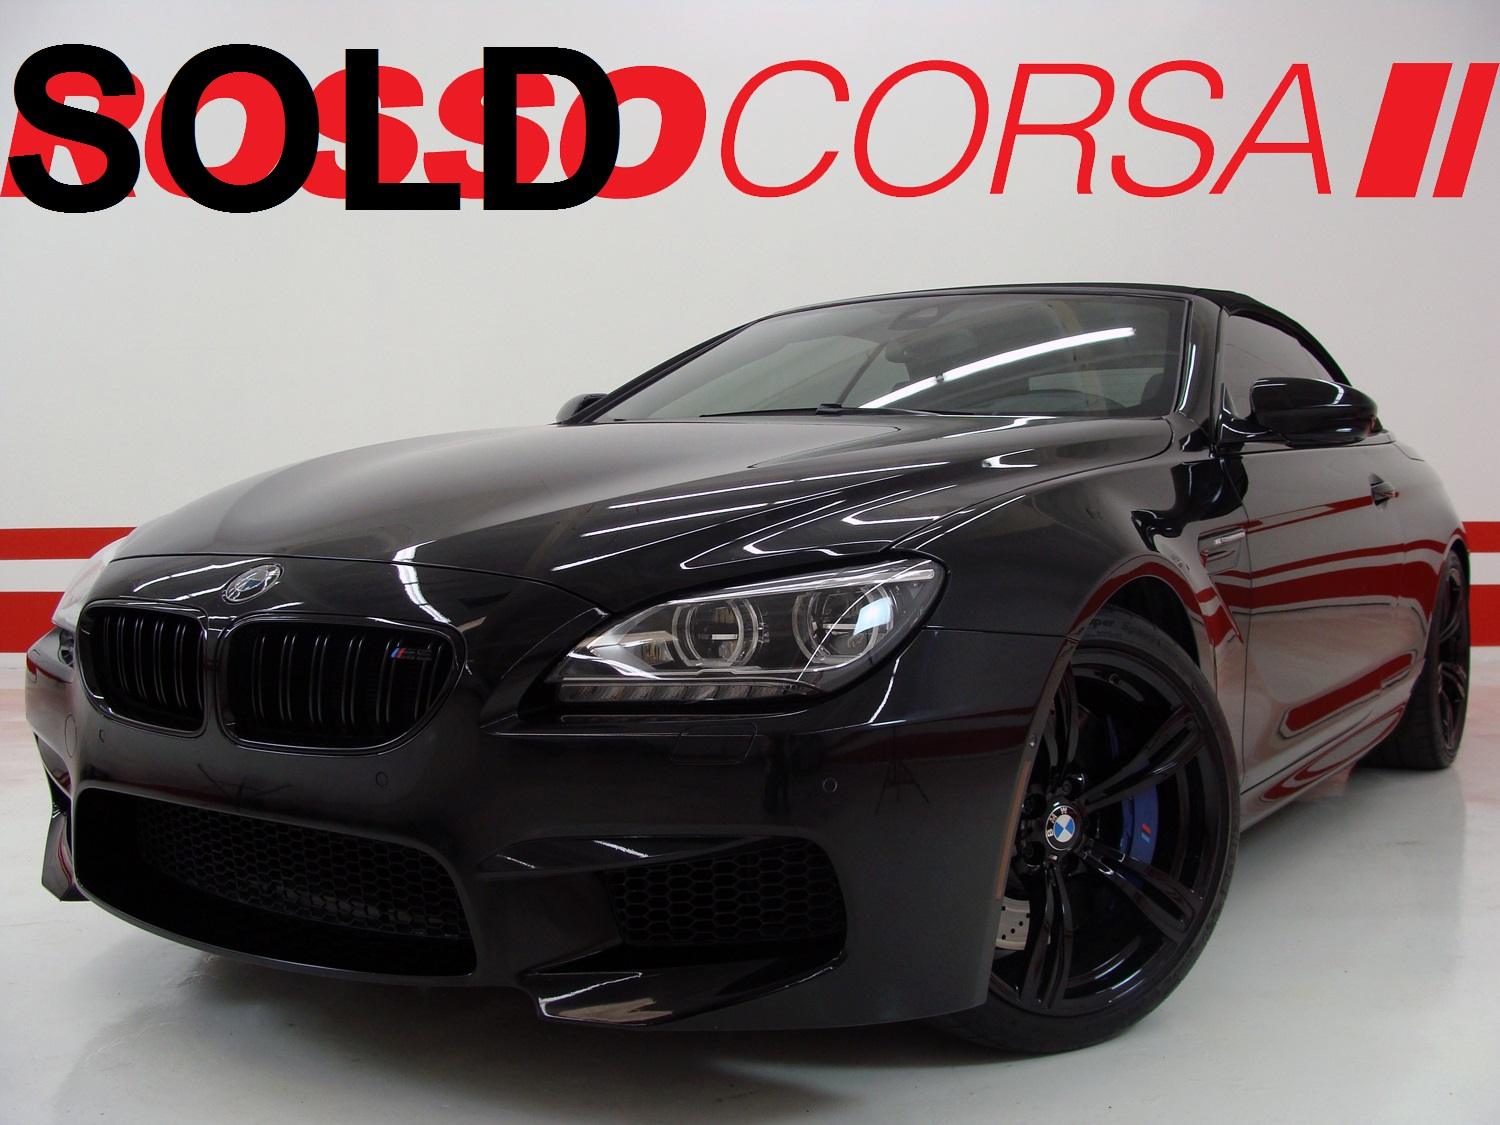 2013 BMW M6 Convertible CUSTOM ($132K MSRP)